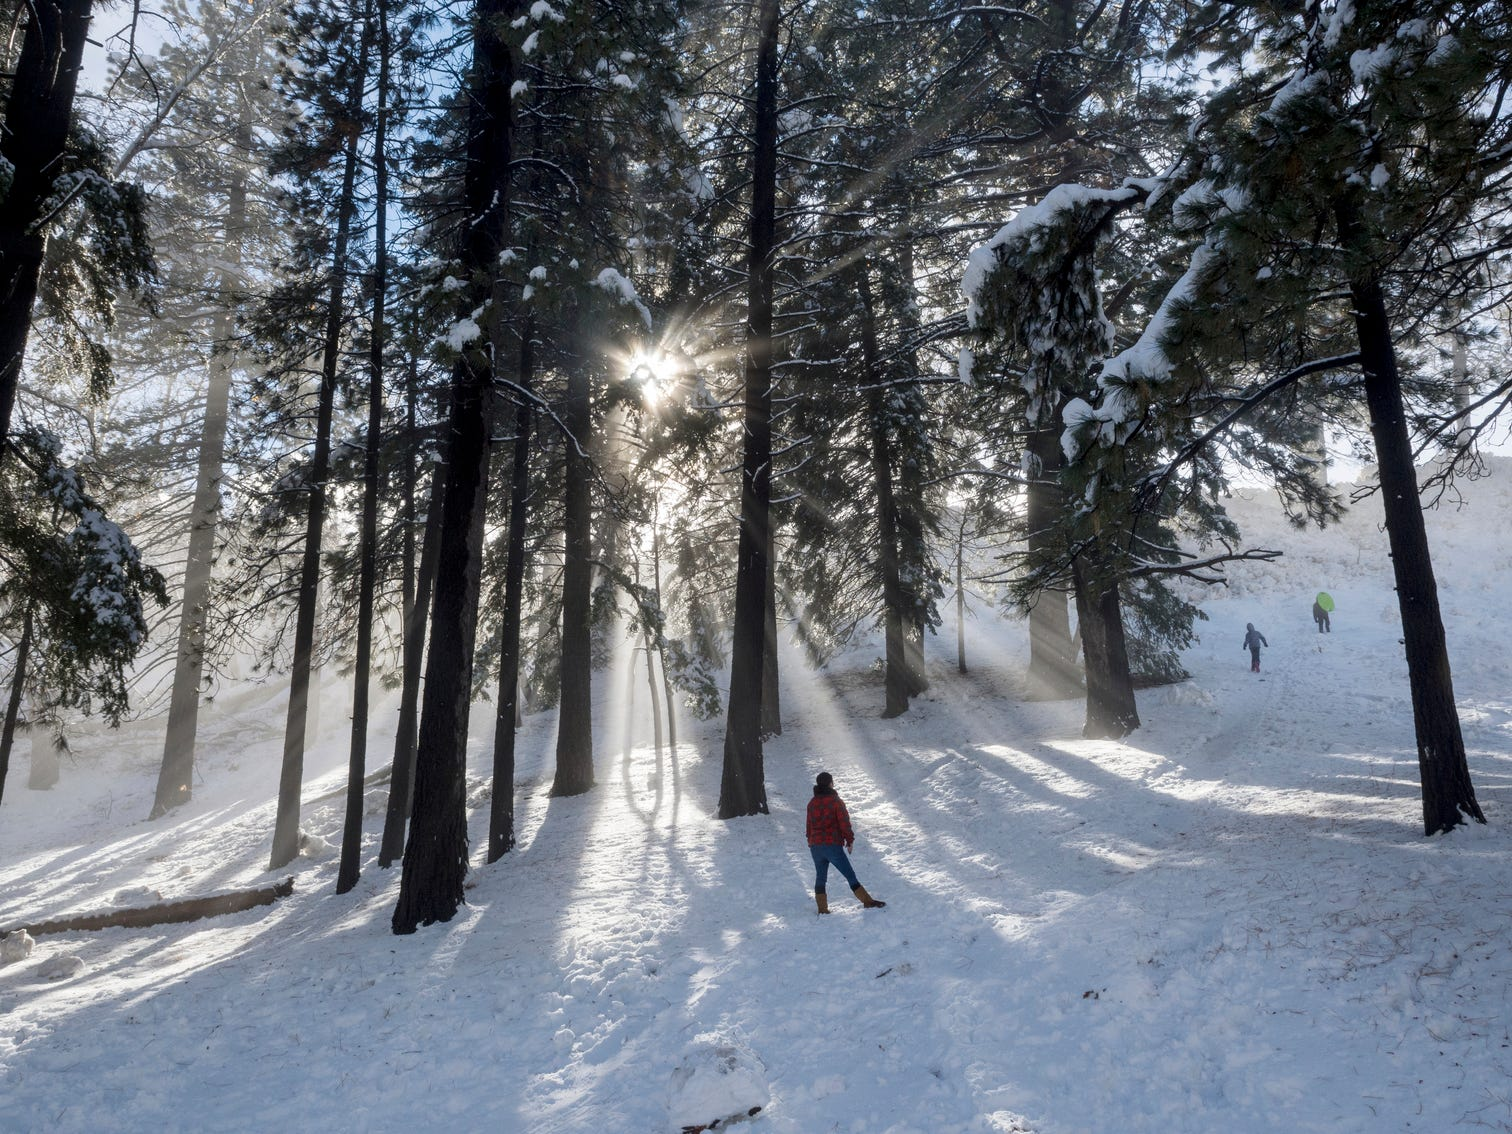 After an extended storm covered the area the sun comes out as visitors turned out to play in the new coat of snow covering the mountains on Dec. 7 in Wrightwood, Calif.